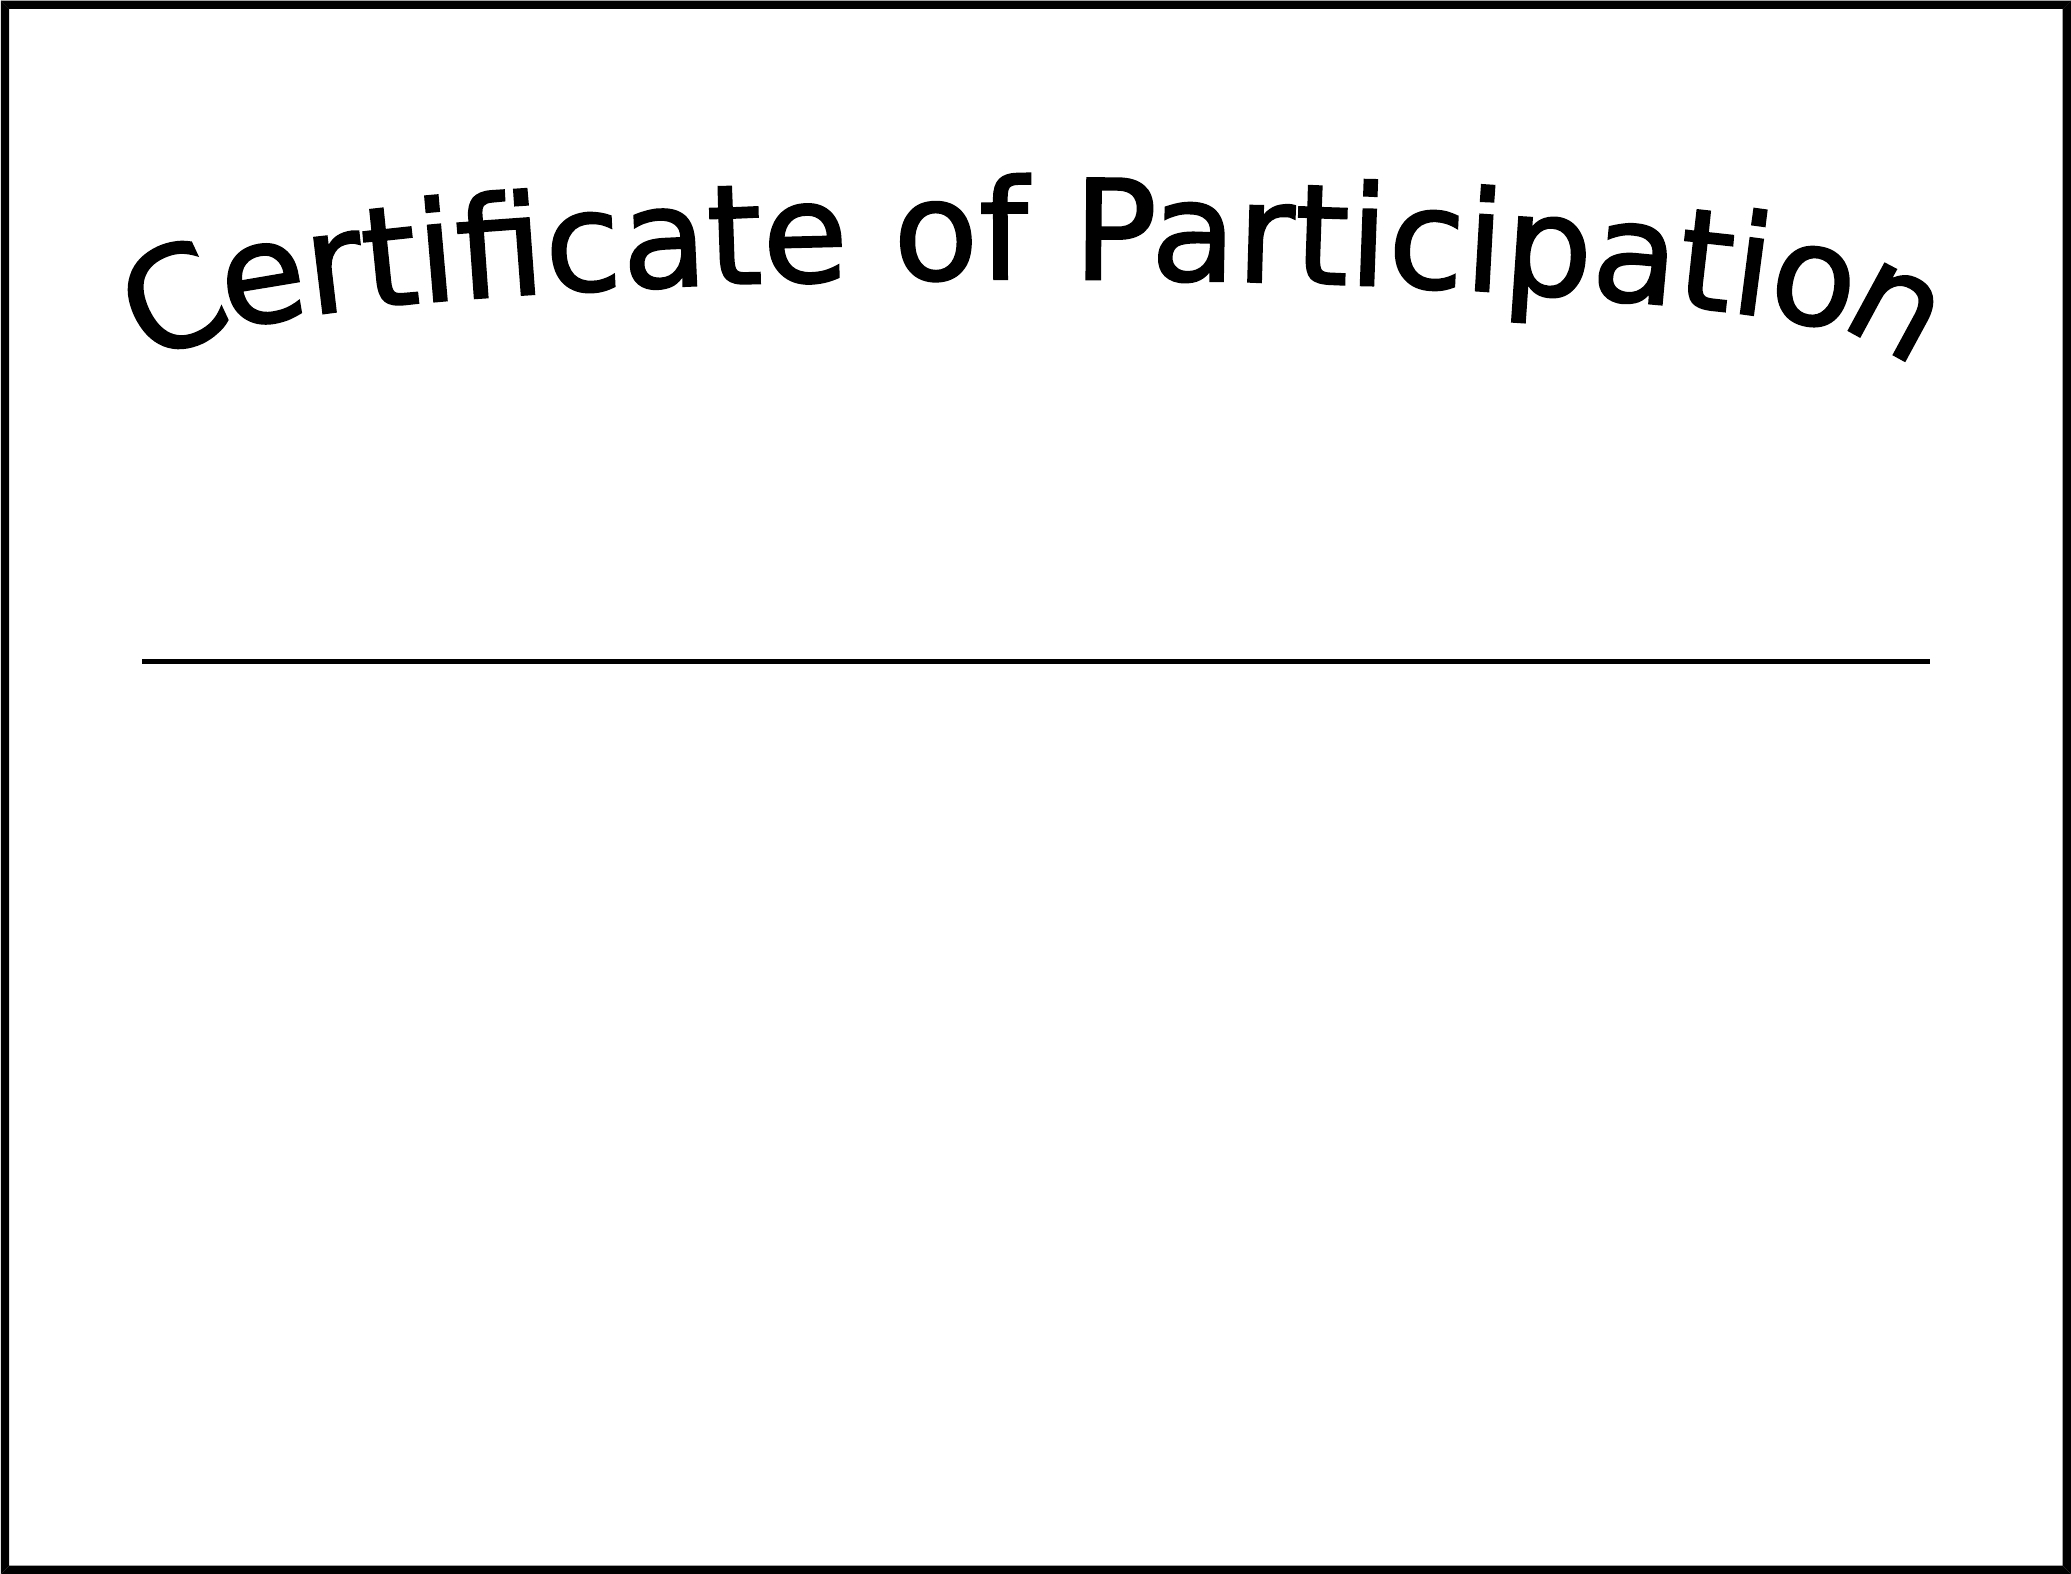 Simple Participation Certificate Template Free Download With Regard To Participation Certificate Templates Free Download